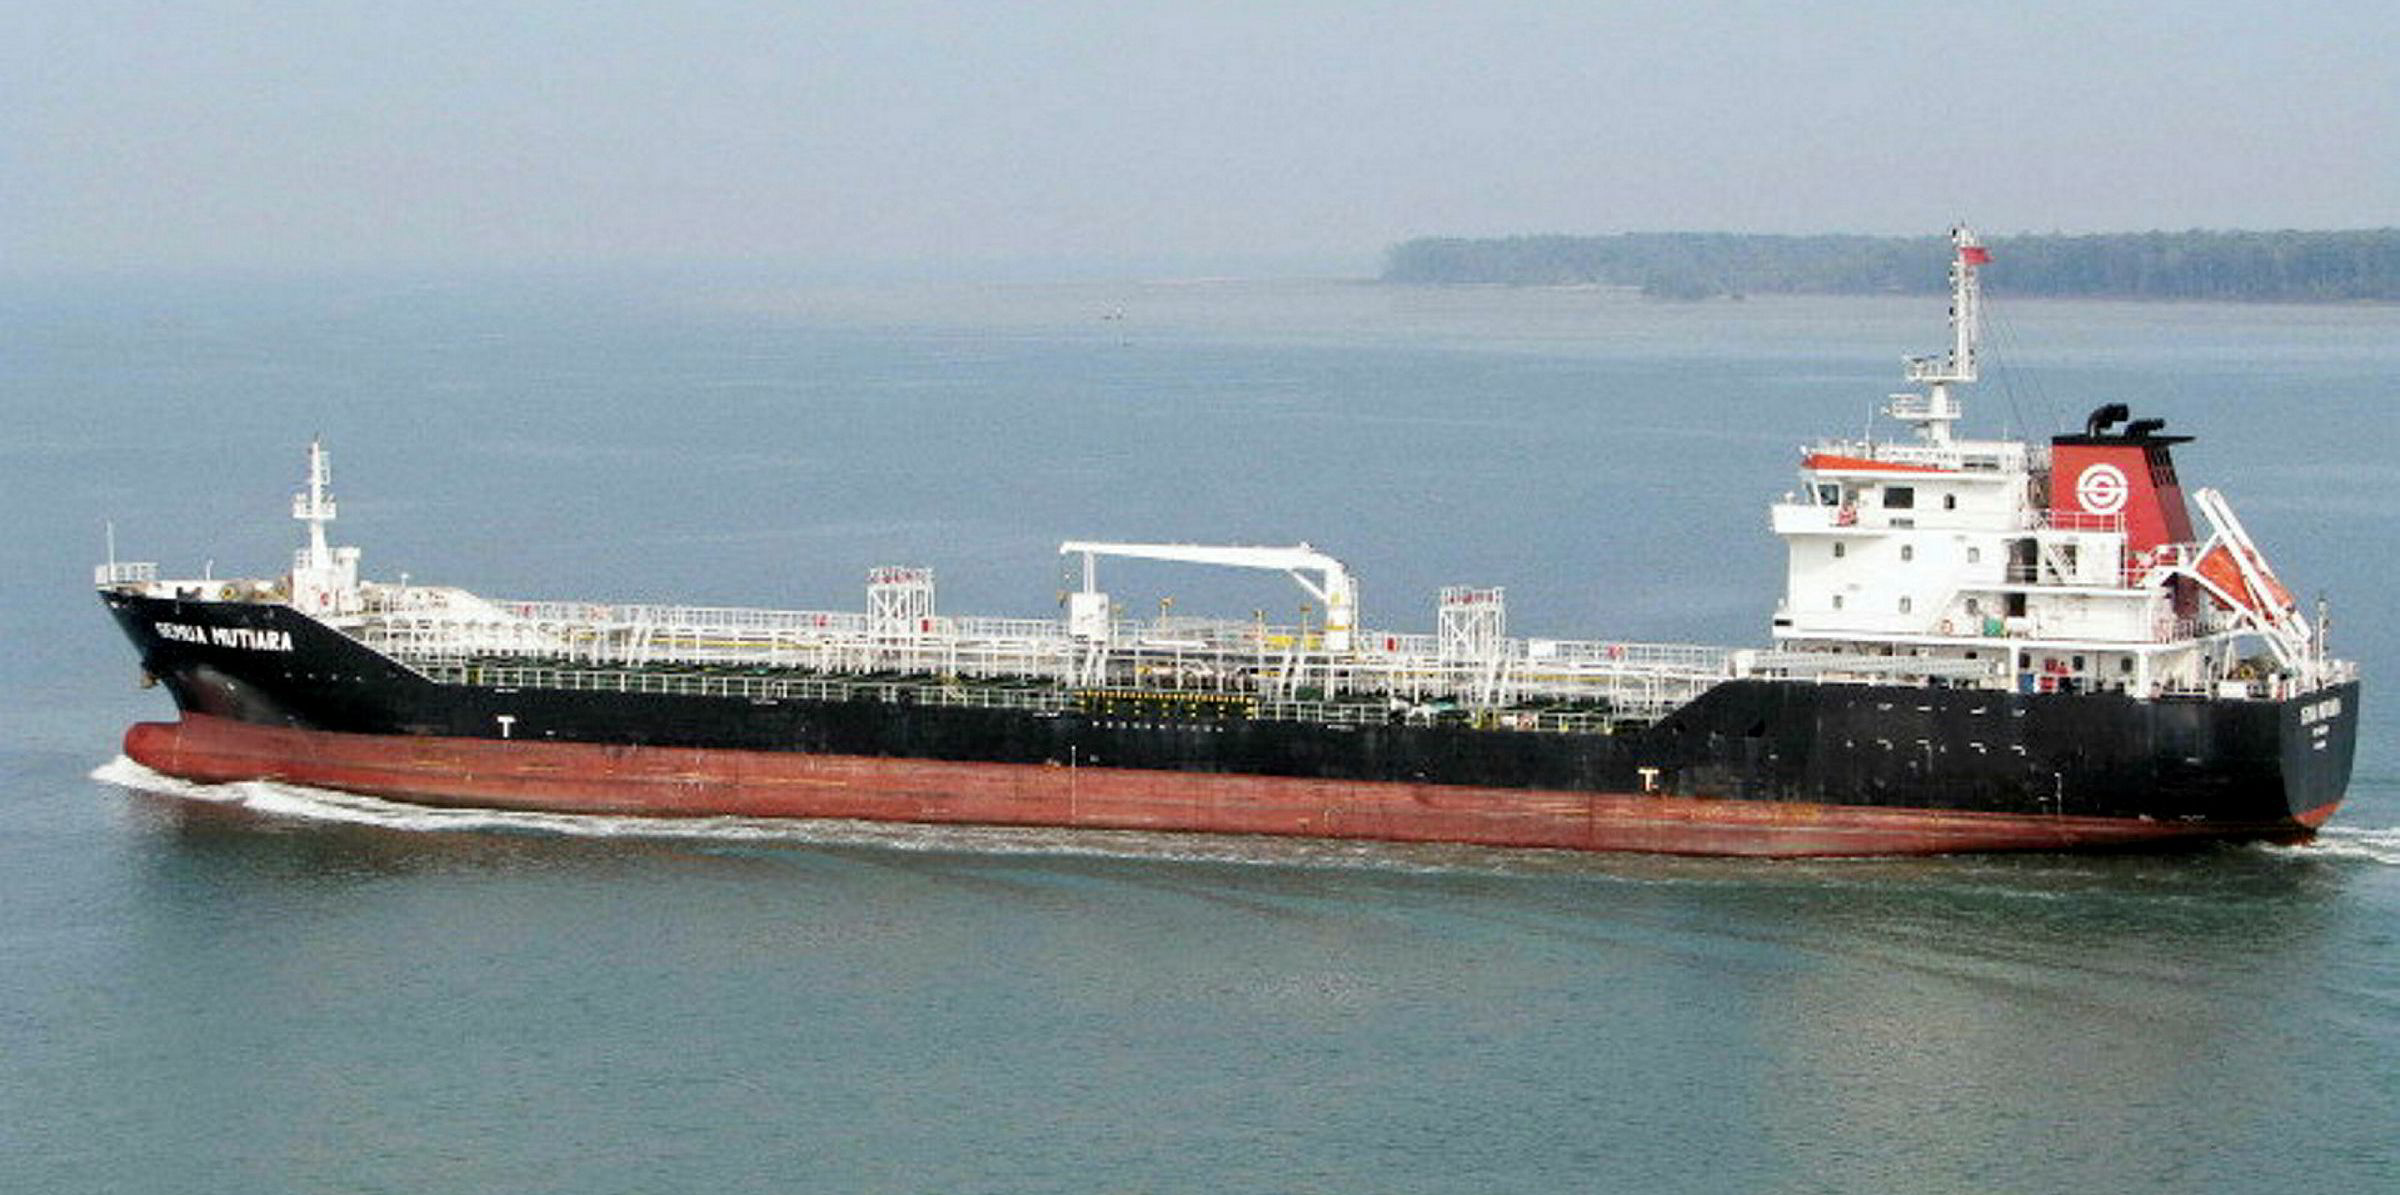 Semua Shipping tanker up for auction | TradeWinds